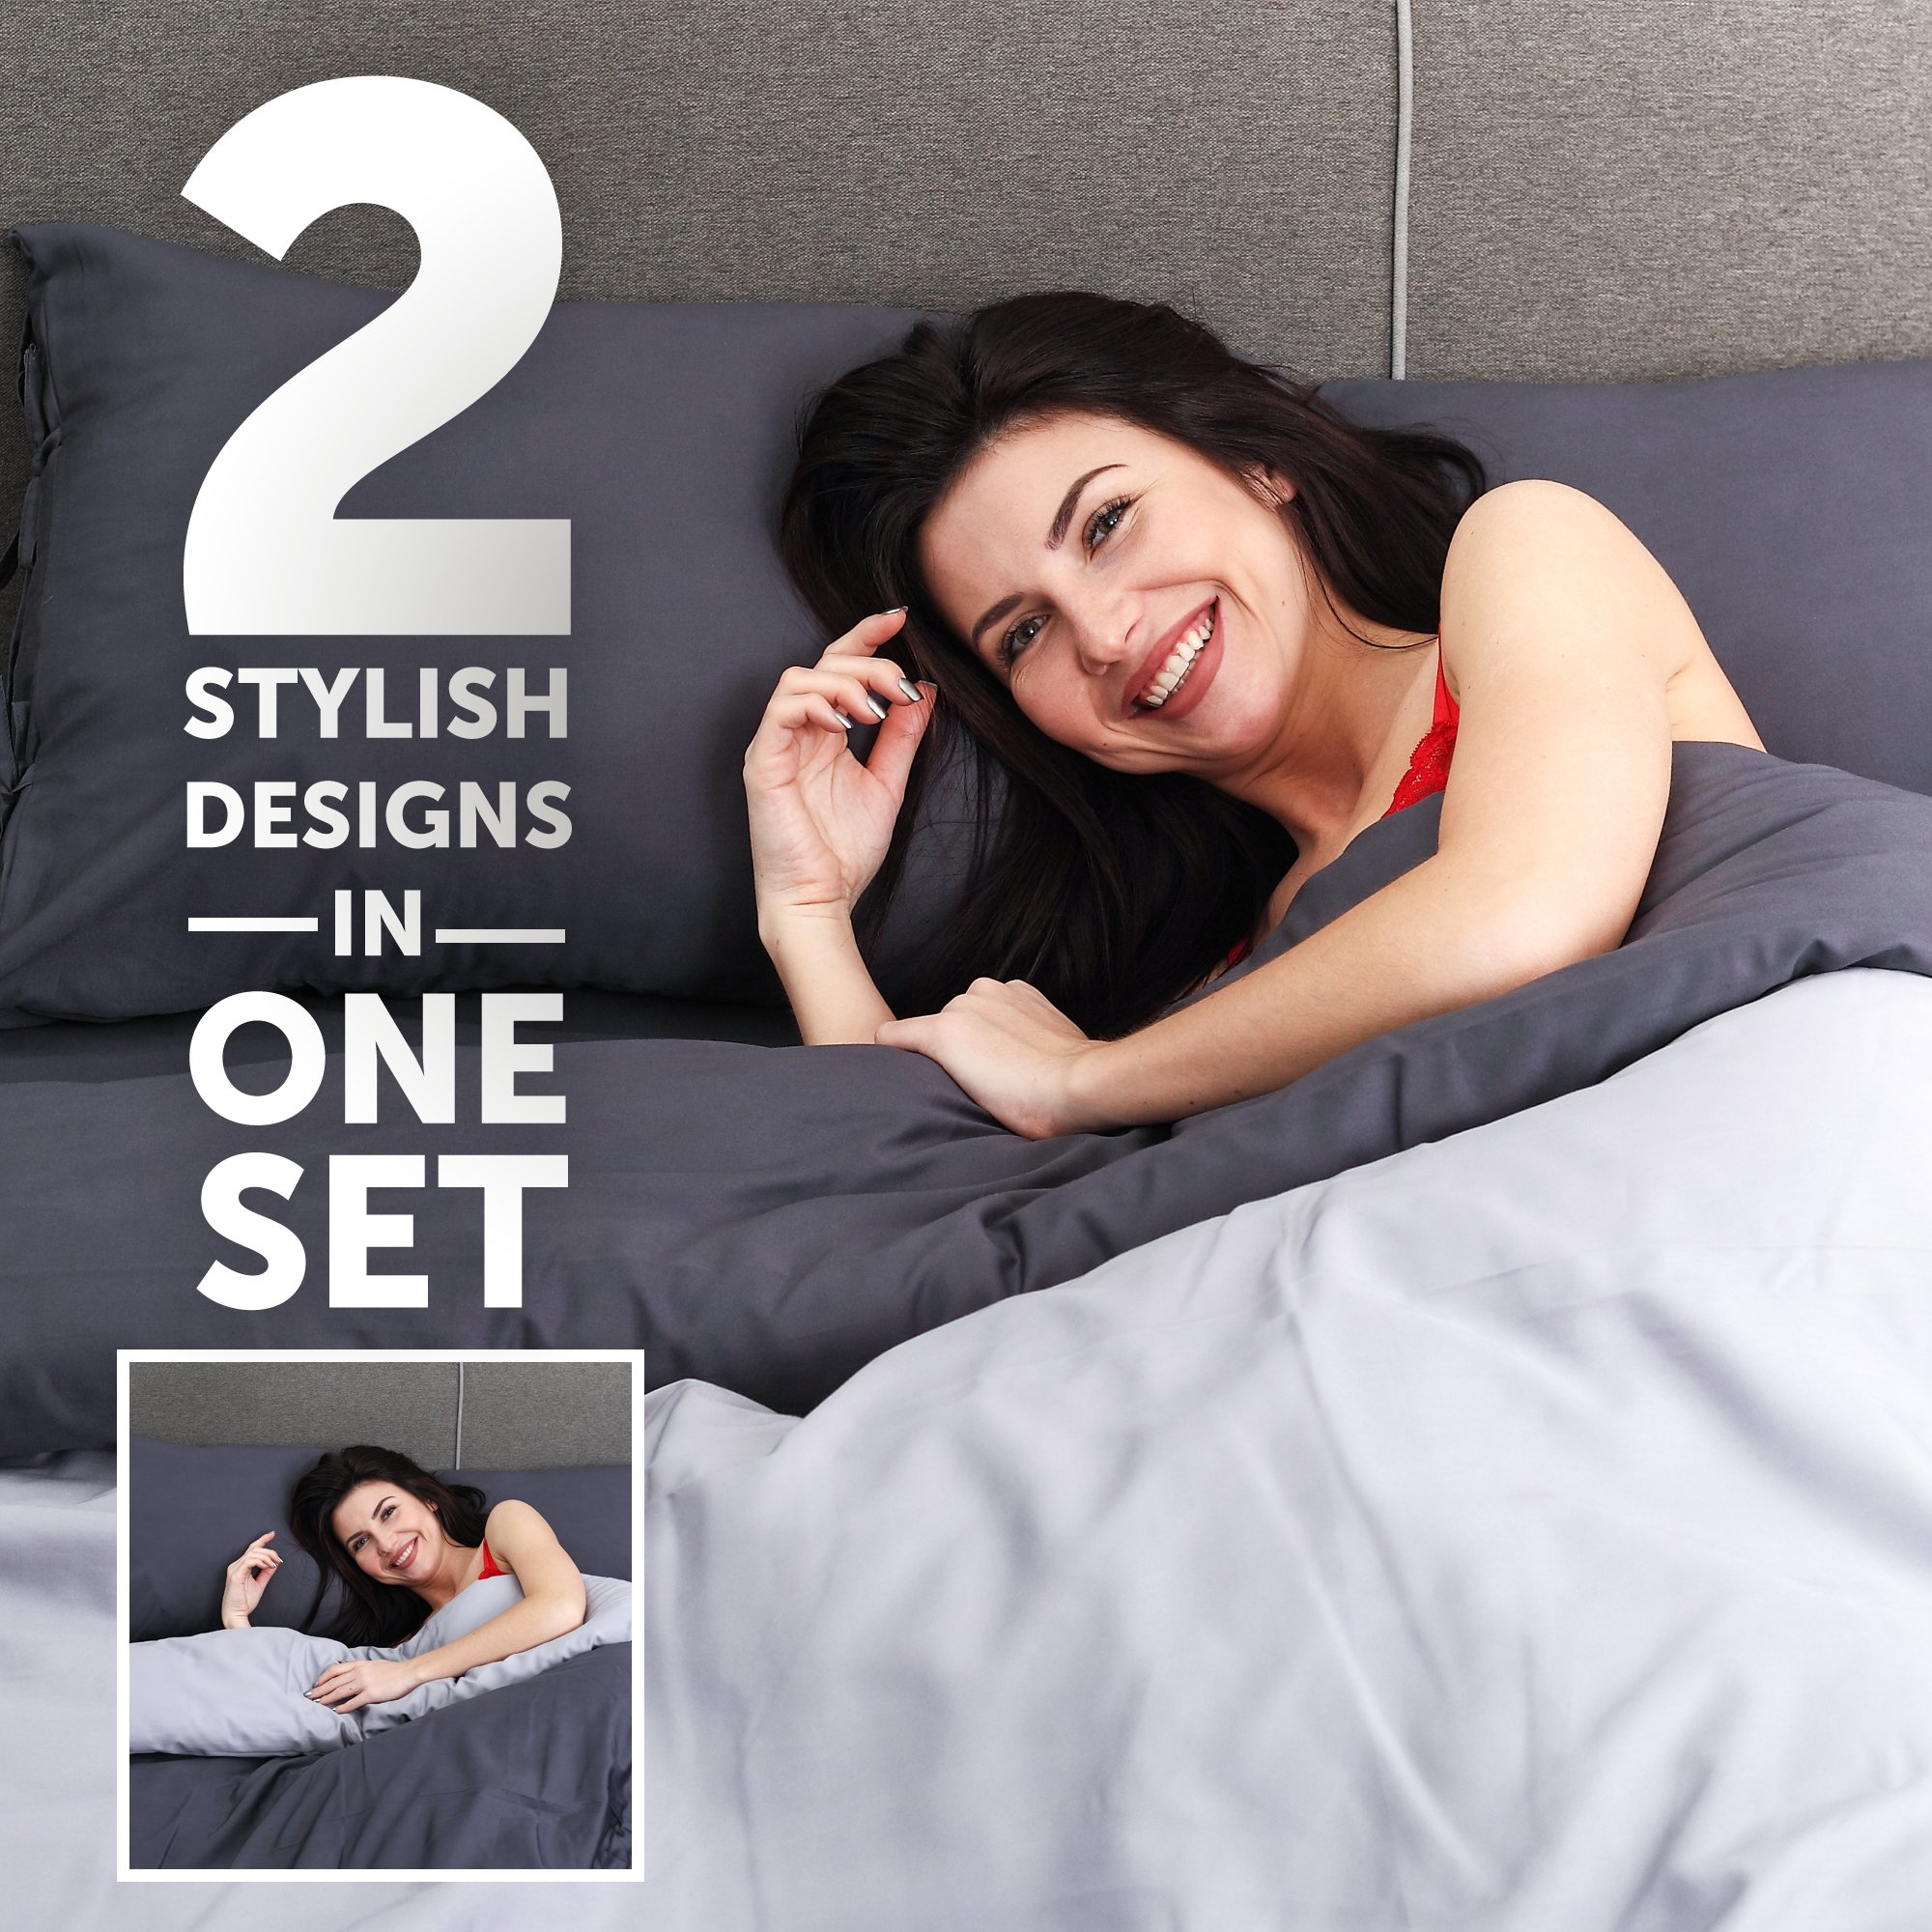 Cloudy Hugs Bed Linen Set – 100% Natural Textile: Sateen – & Comfortable for Sweet Dreams - 5 pc Set -Queen, Dark Gray/Light Gray by Cloudy Hugs (Image #3)